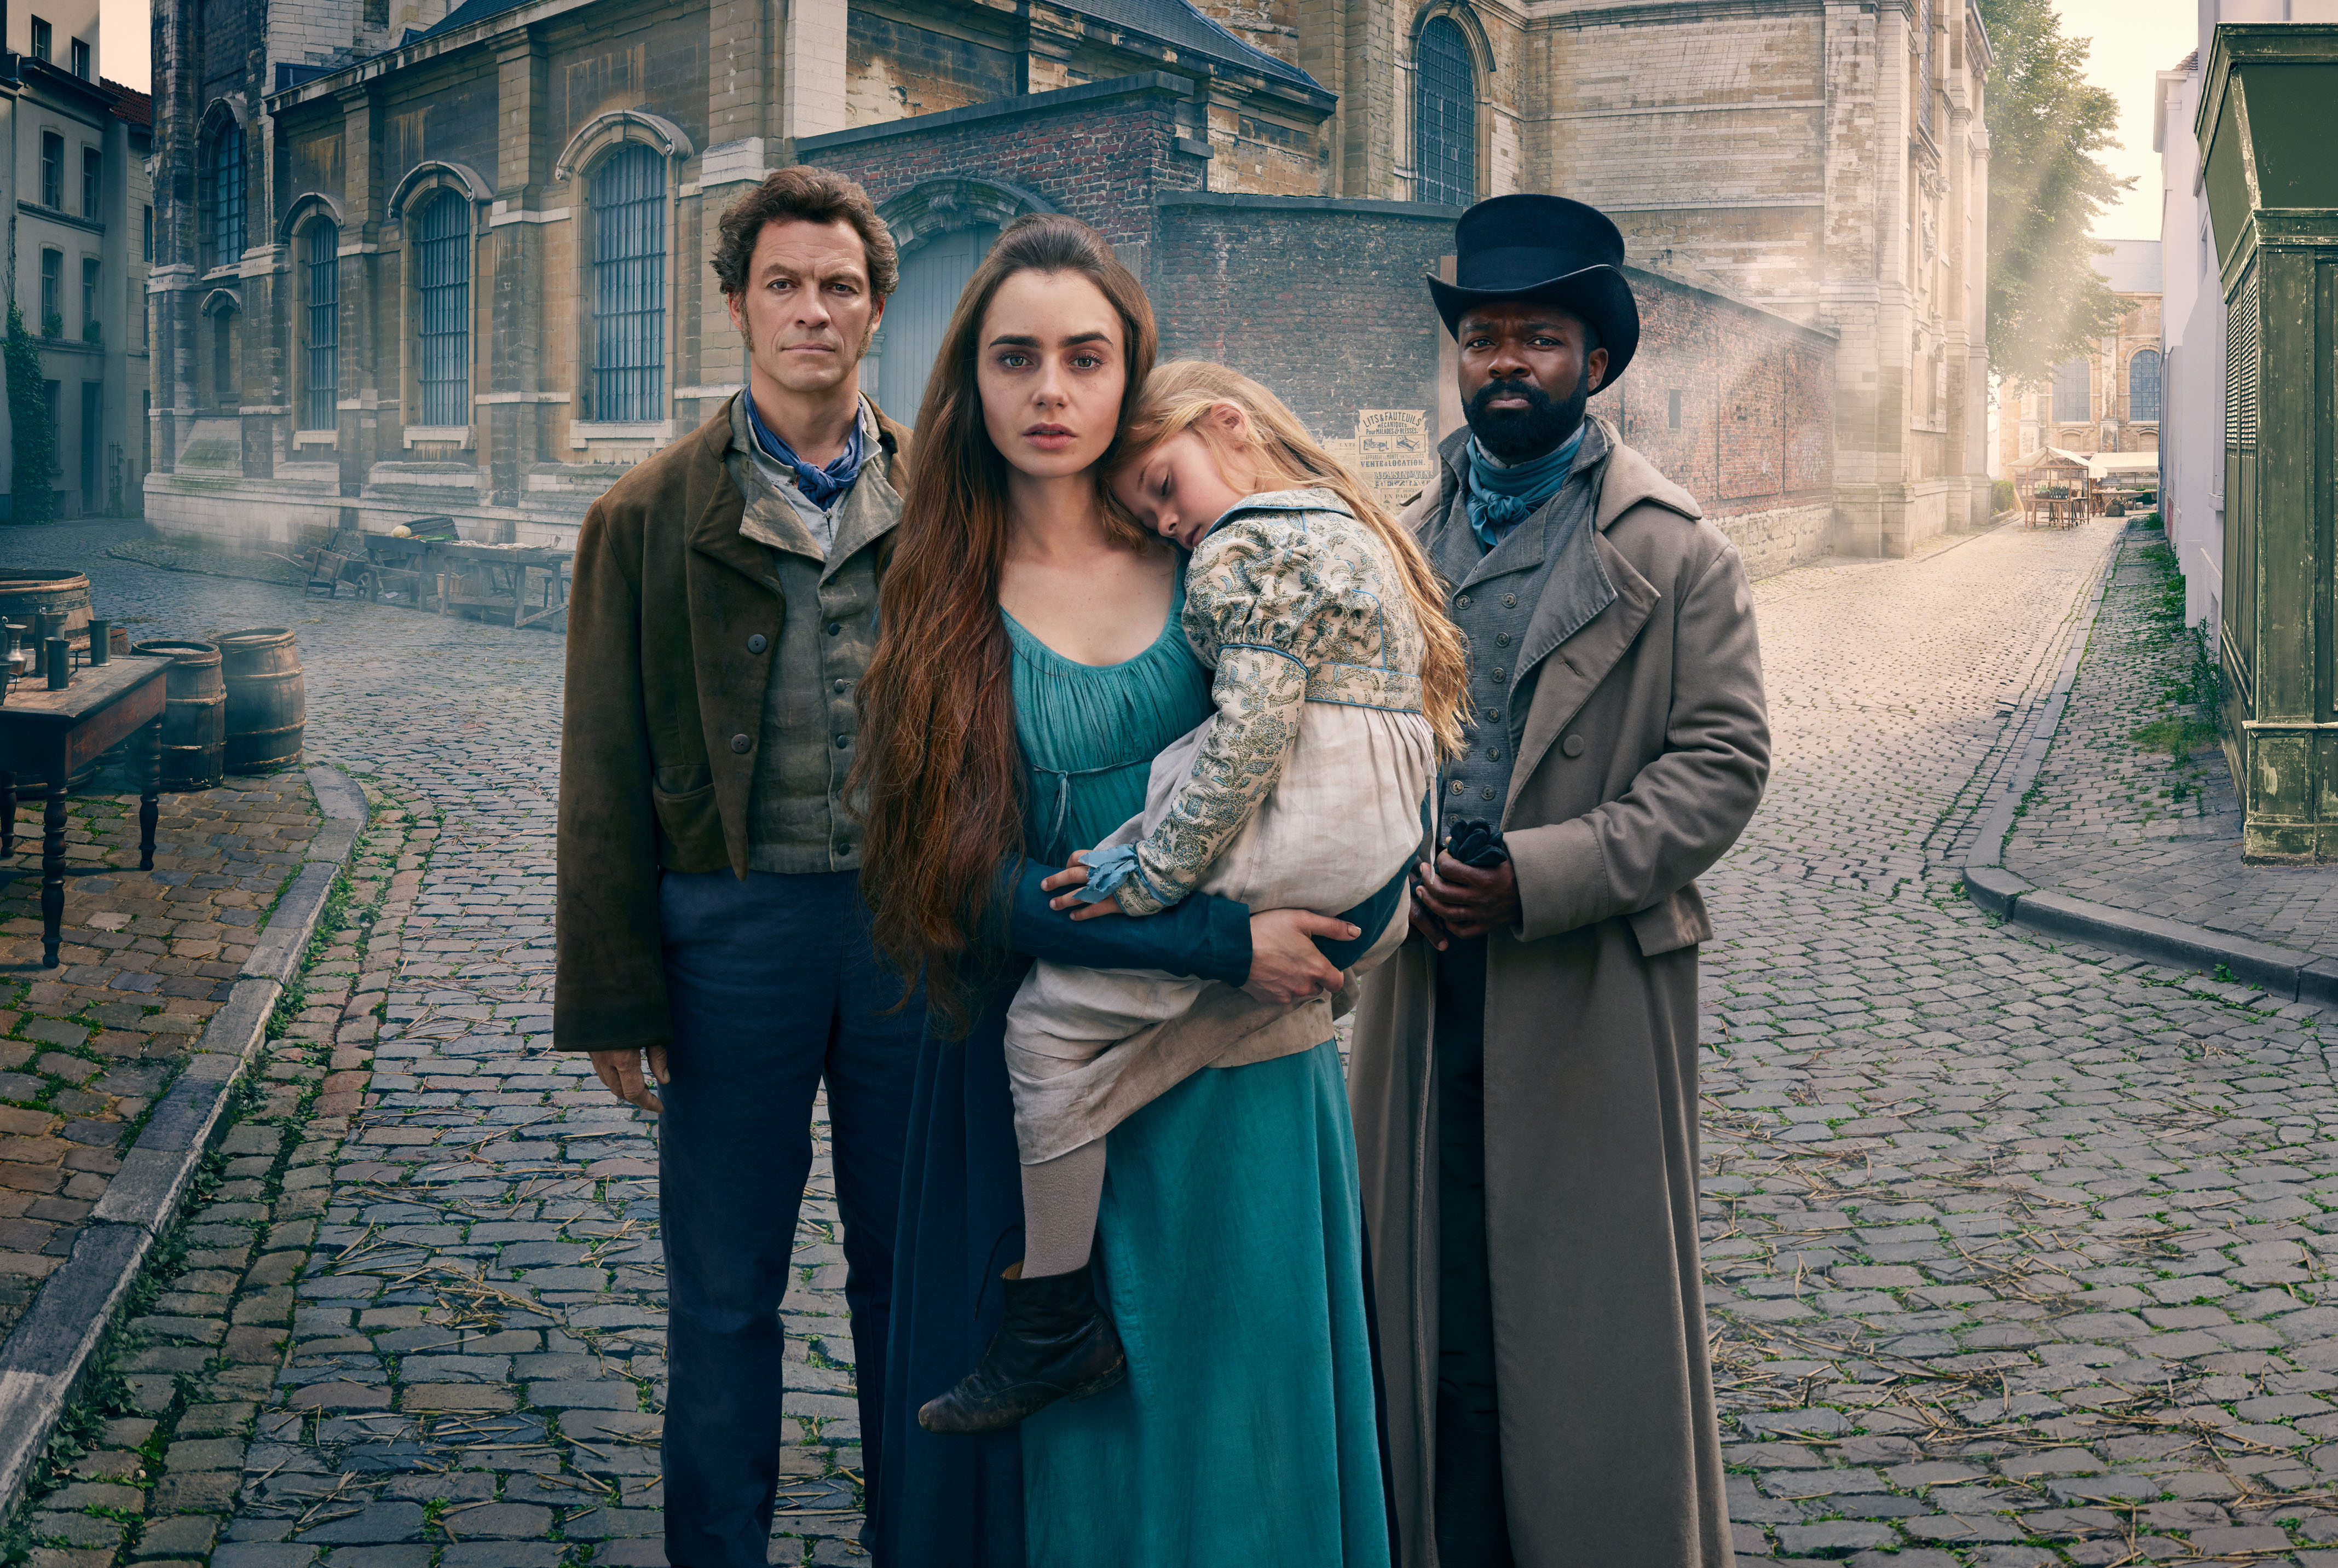 Les Misérables review: BBC adaptation without any musical hits is a welcome change